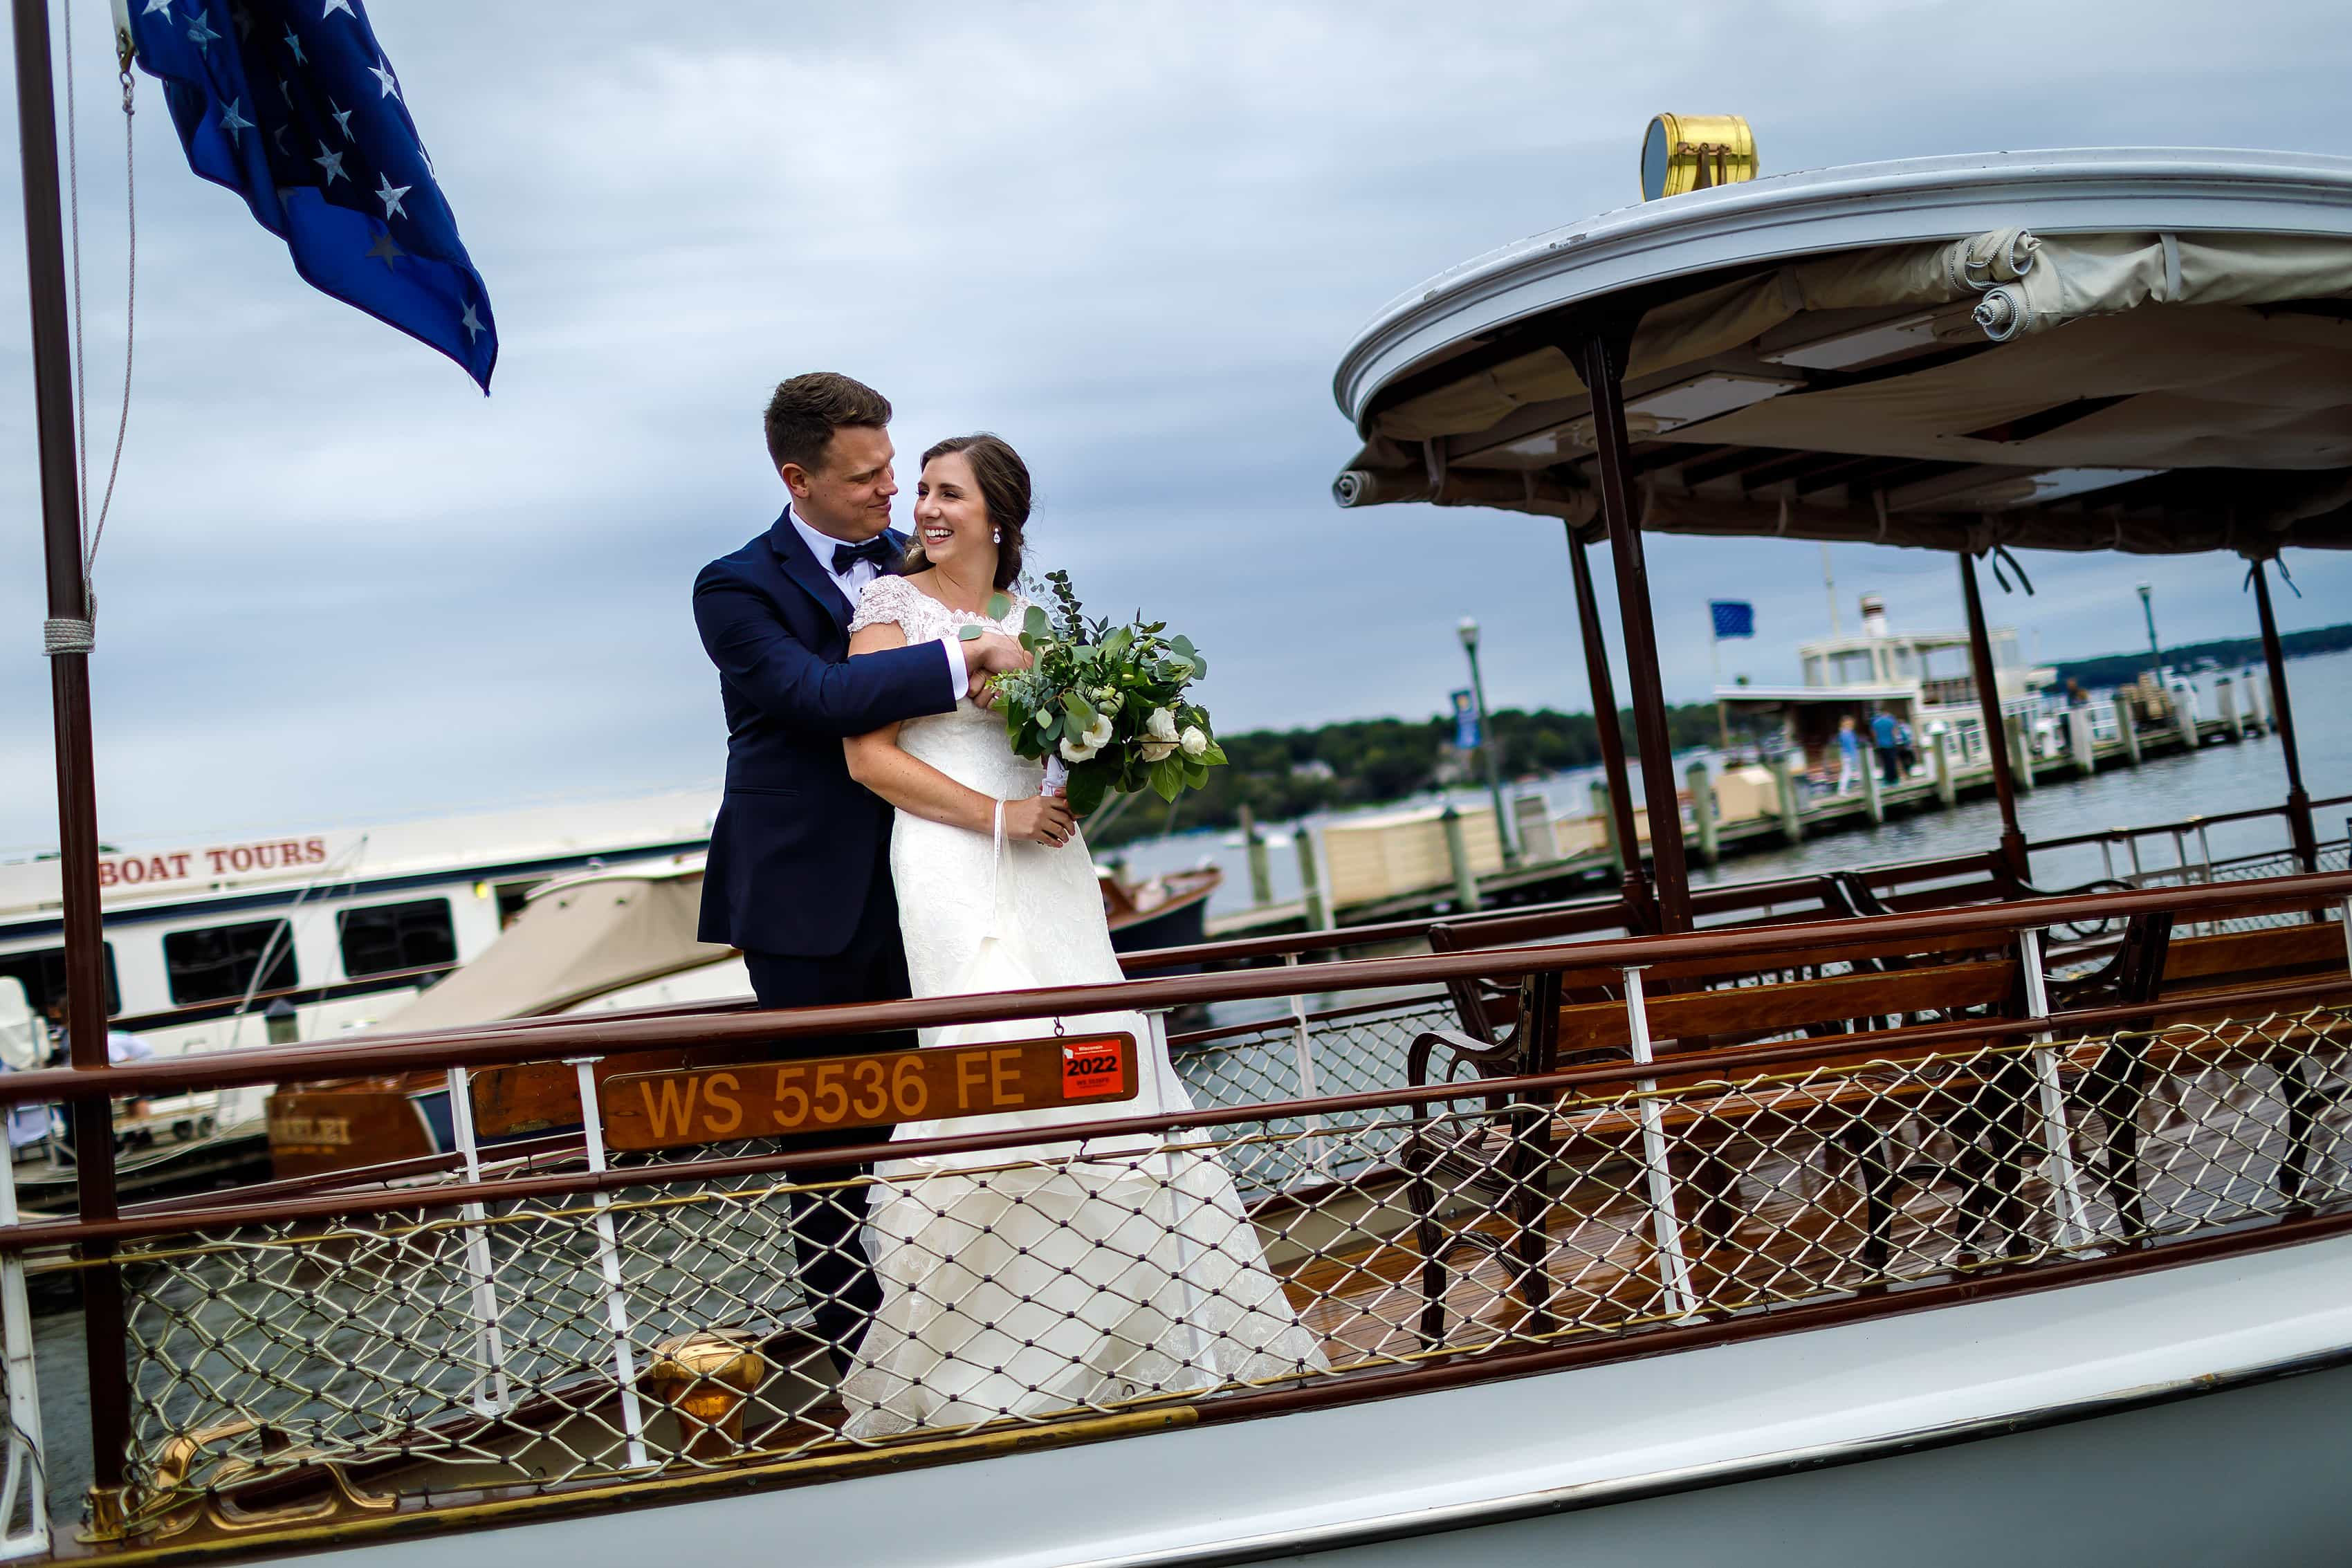 Bride and groom pose for a photo on a boat at Lake Geneva Yacht Club in Lake Geneva, Wisconsin